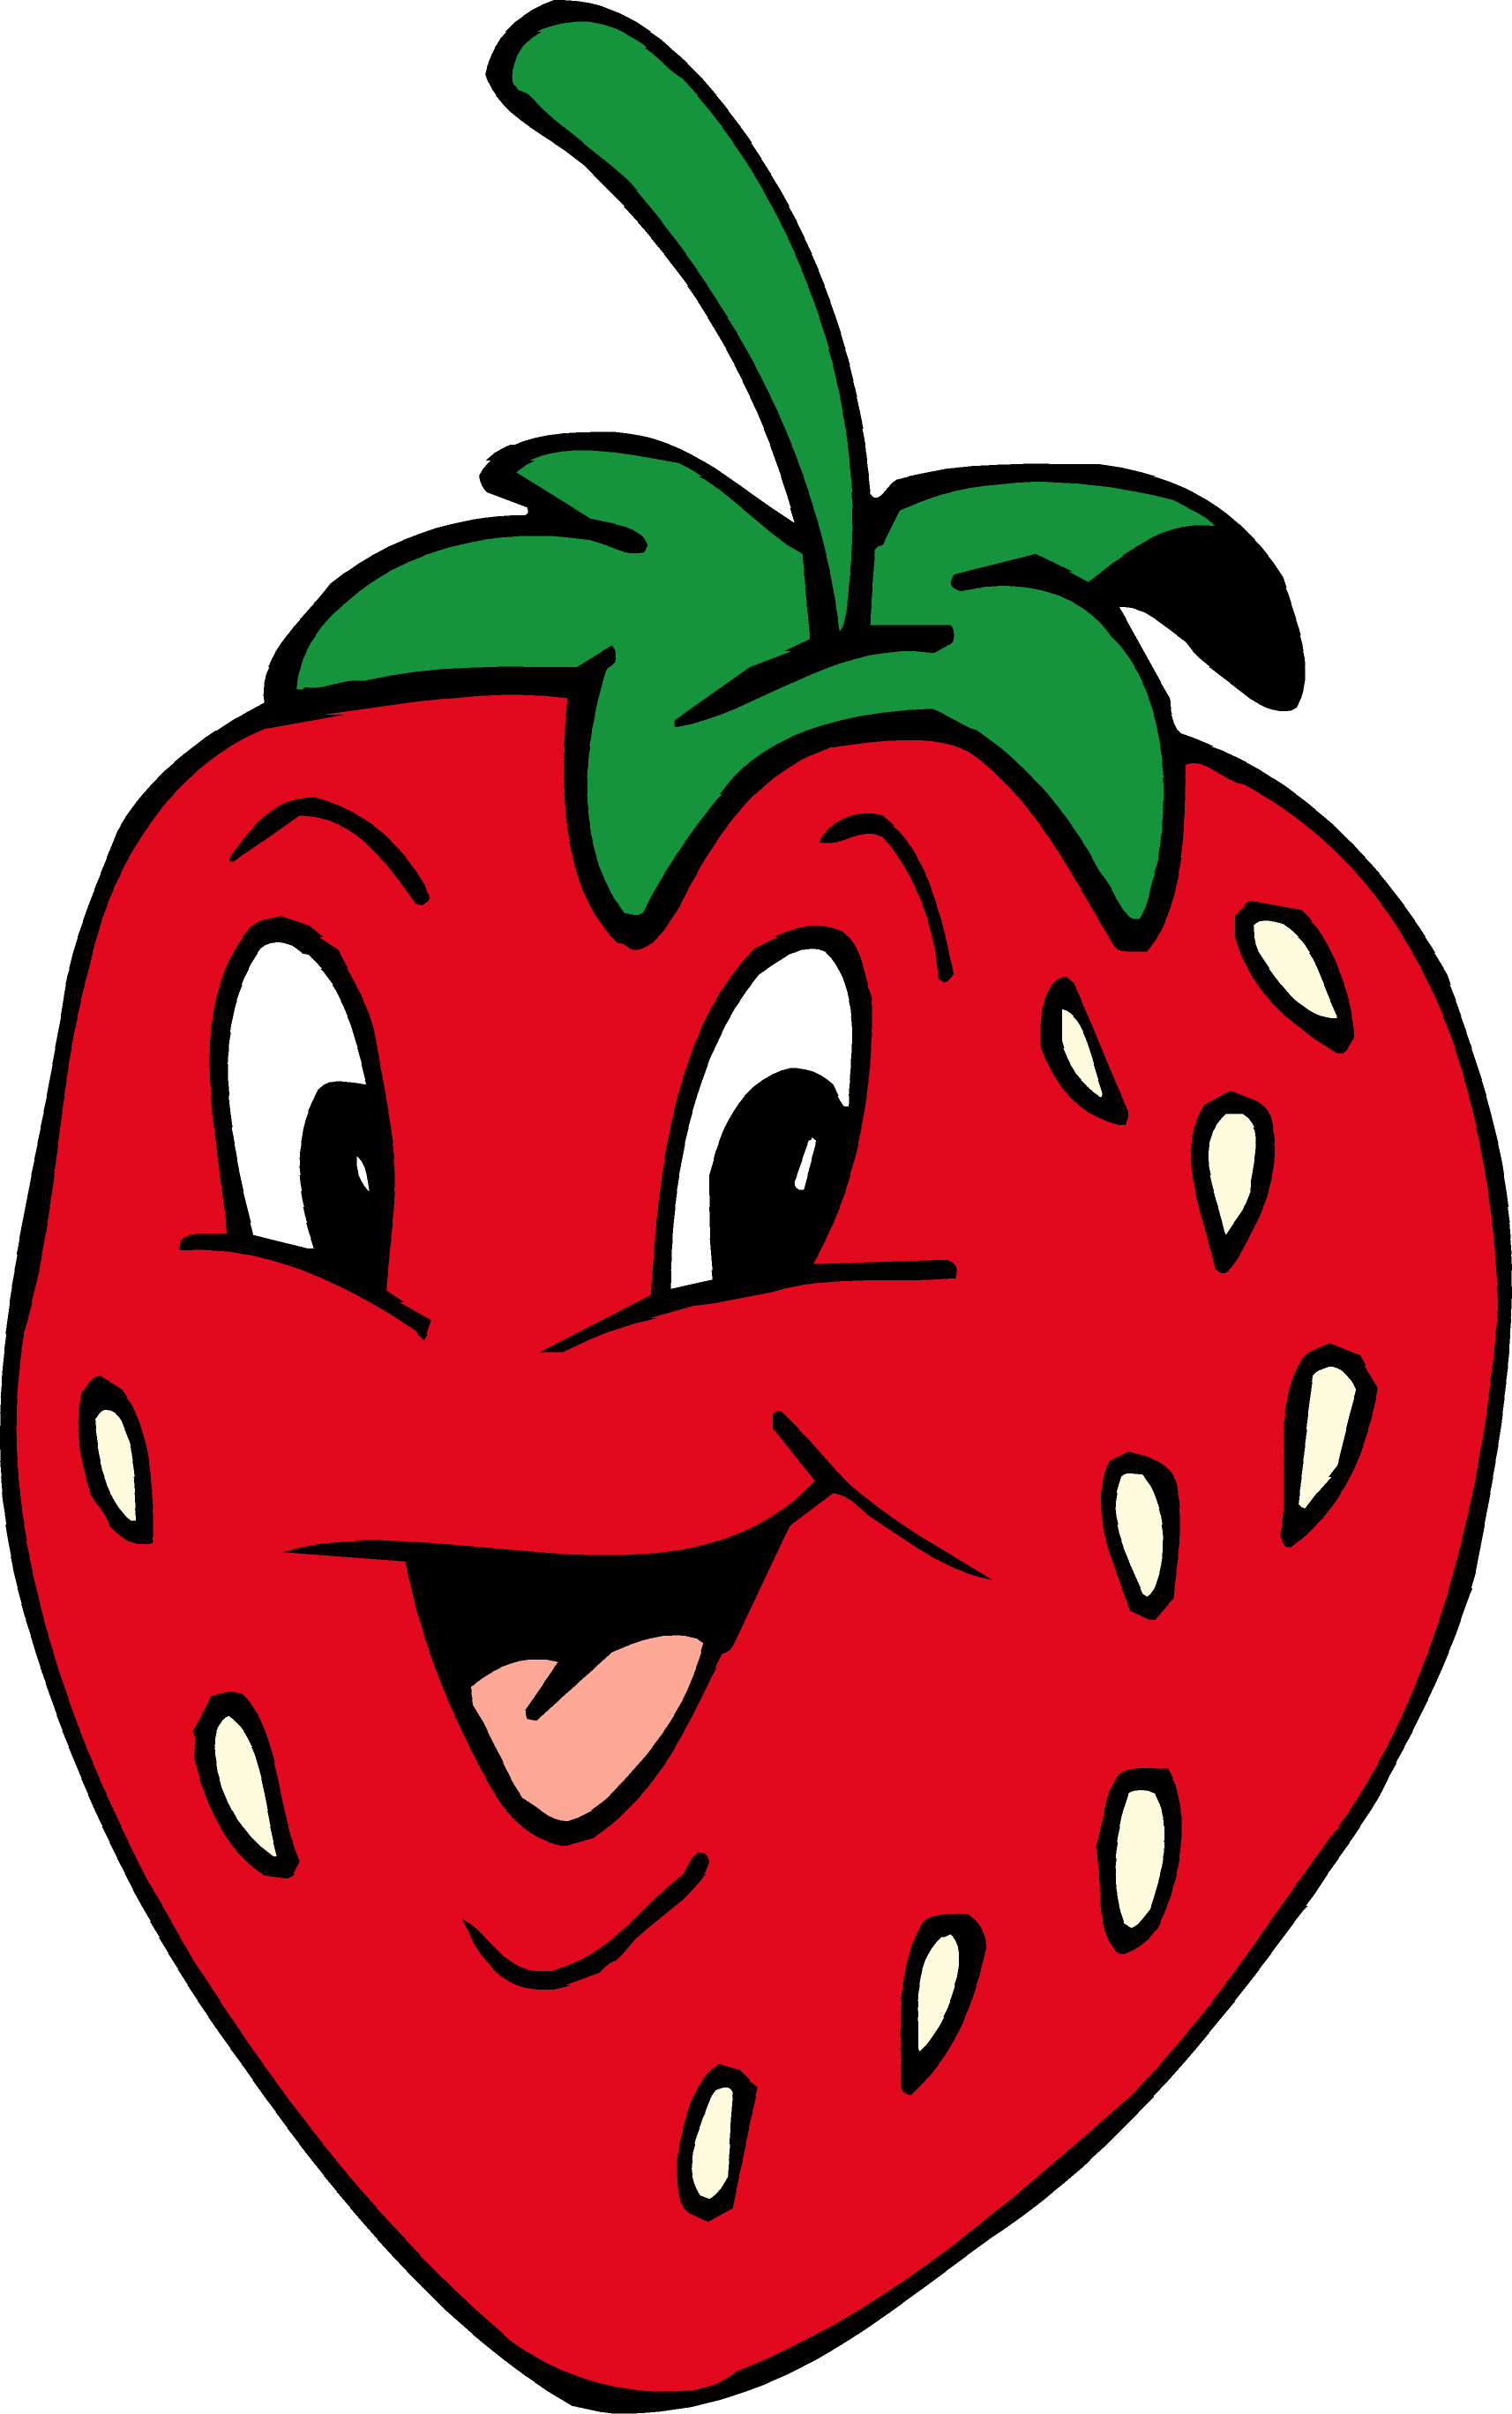 Strawberry clipart pictures svg Strawberry clip art free clipart images 2 - ClipartBarn svg